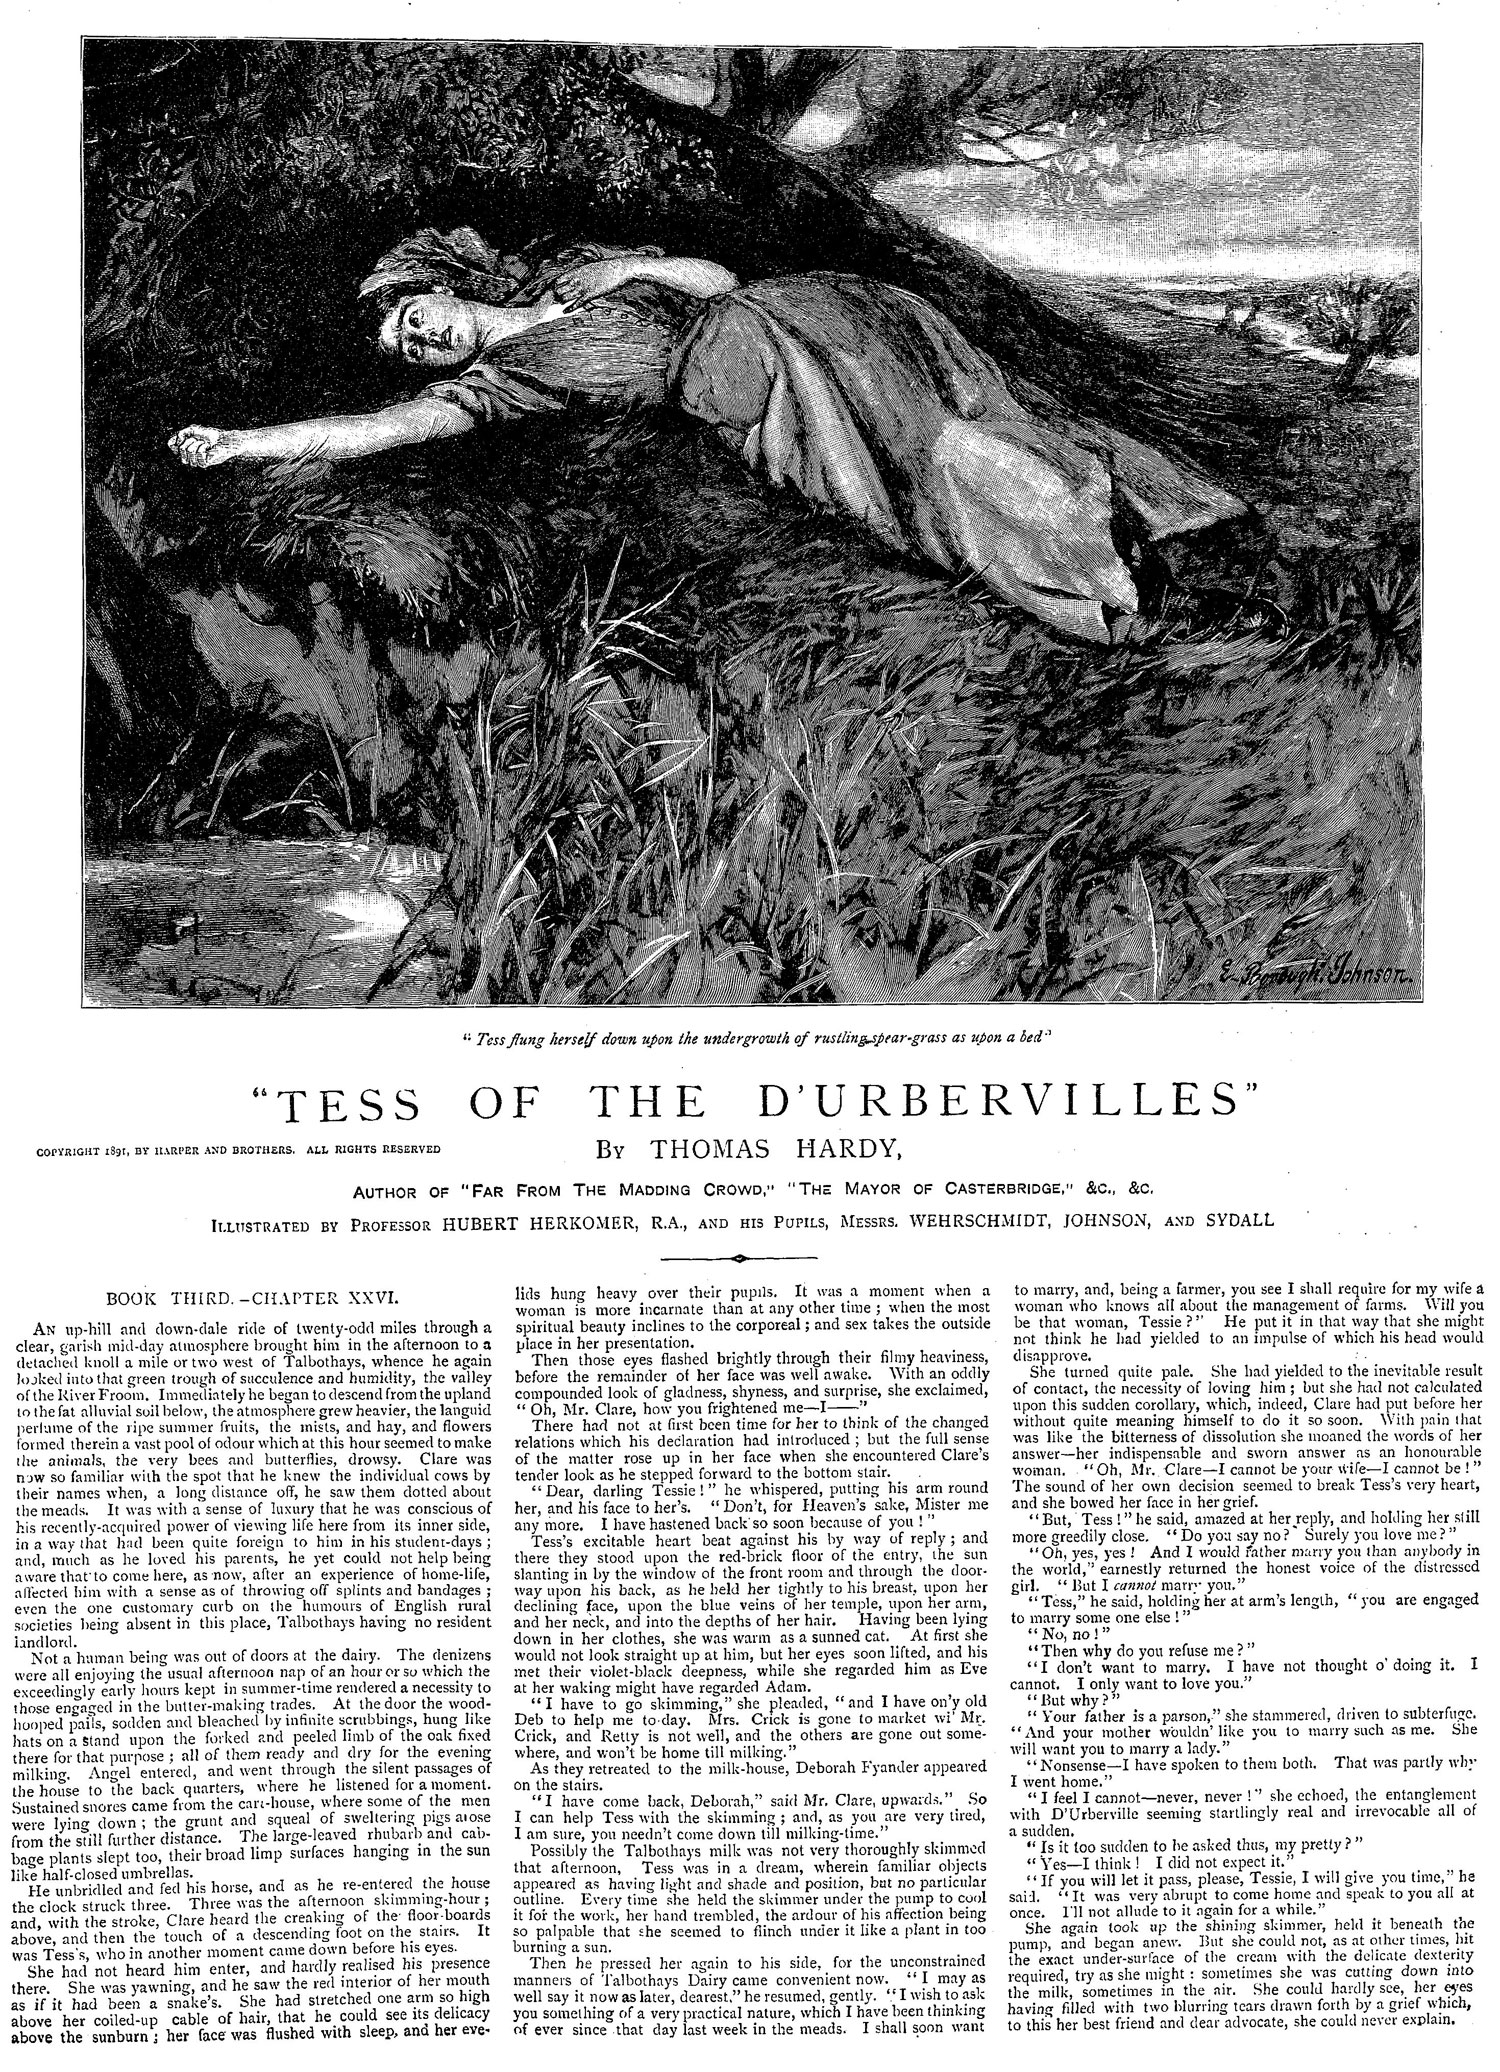 Last Year Of High School Essay Tess Of The Durbervilles Published In The Graphic English Essay Pmr also Research Paper Essay Topics Sexuality And Desire In Tess Of The Durbevilles  The British Library Essays On Business Ethics